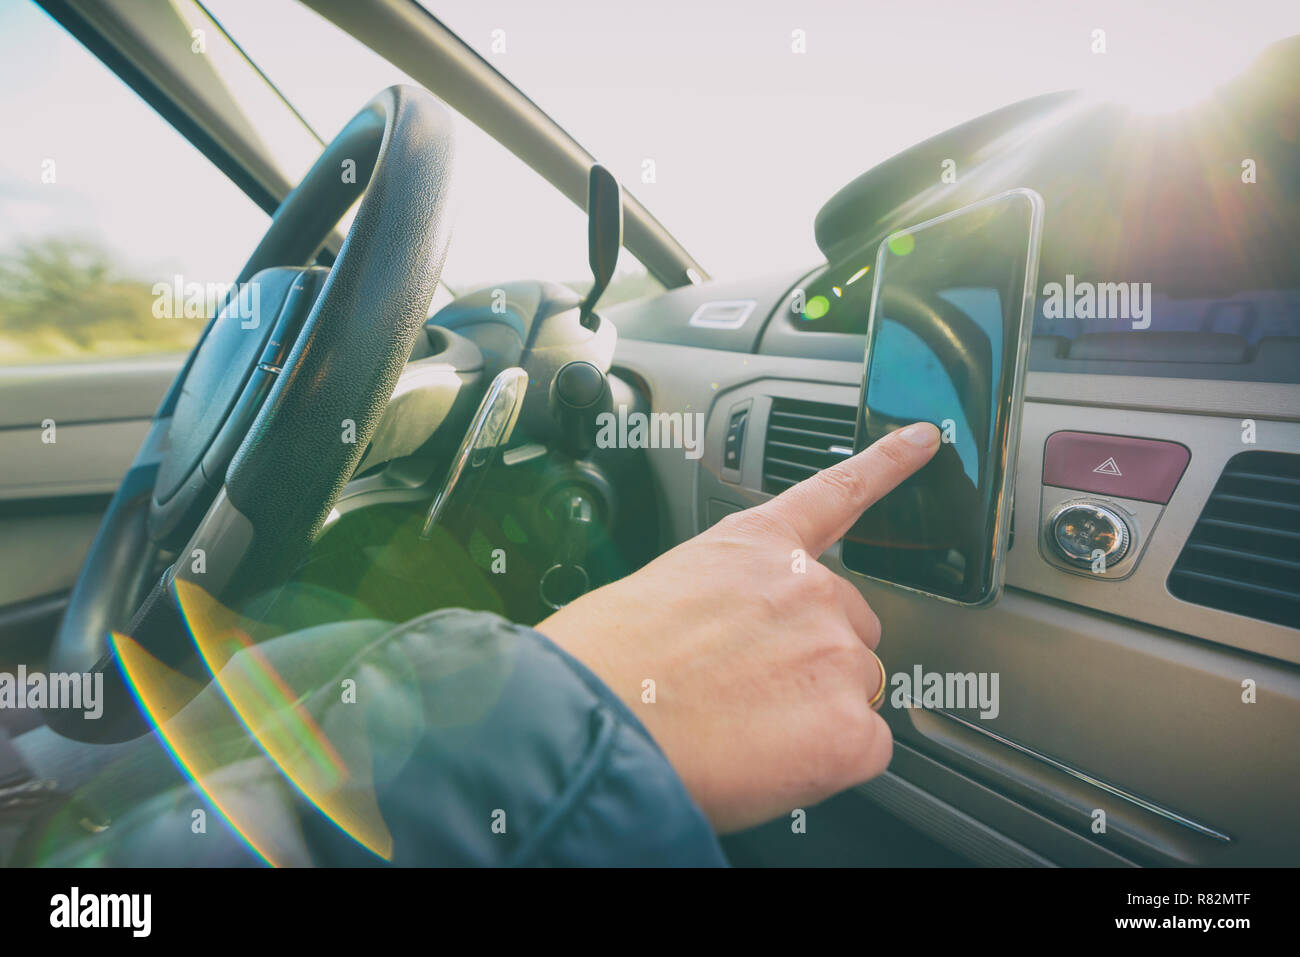 Woman using smart phone as navigation while driving the car. Risky driving behaviors concept - Stock Image